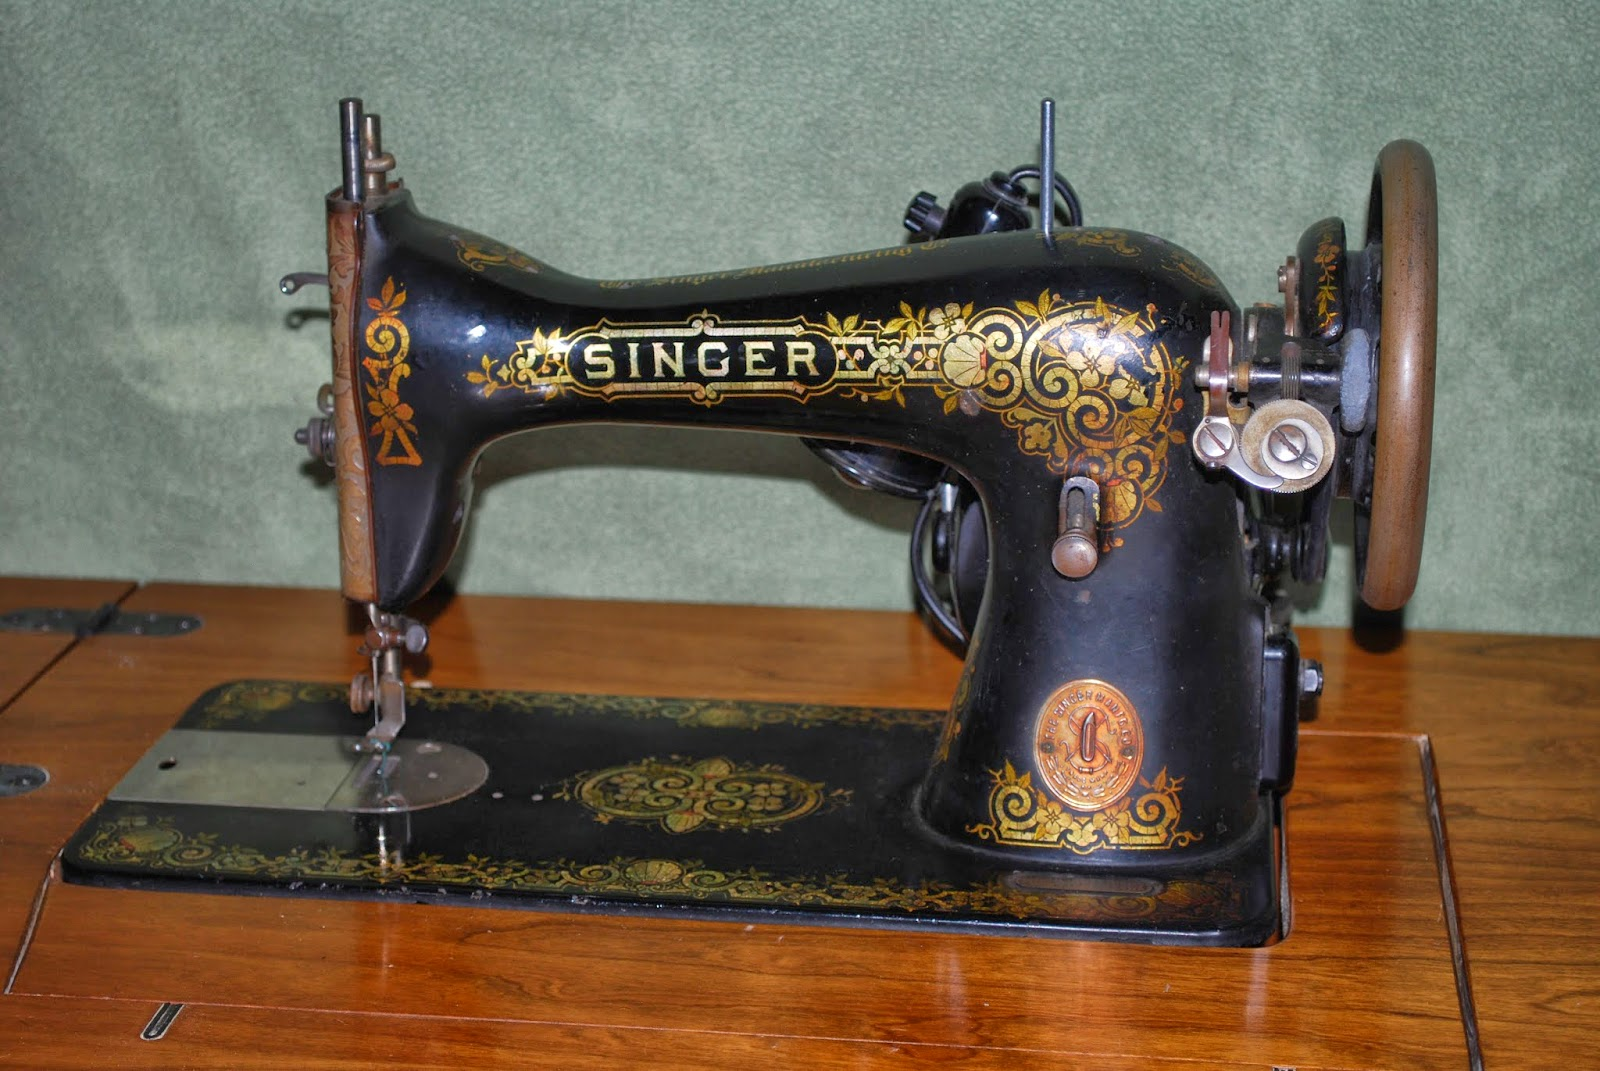 sewing machine industrial revolution